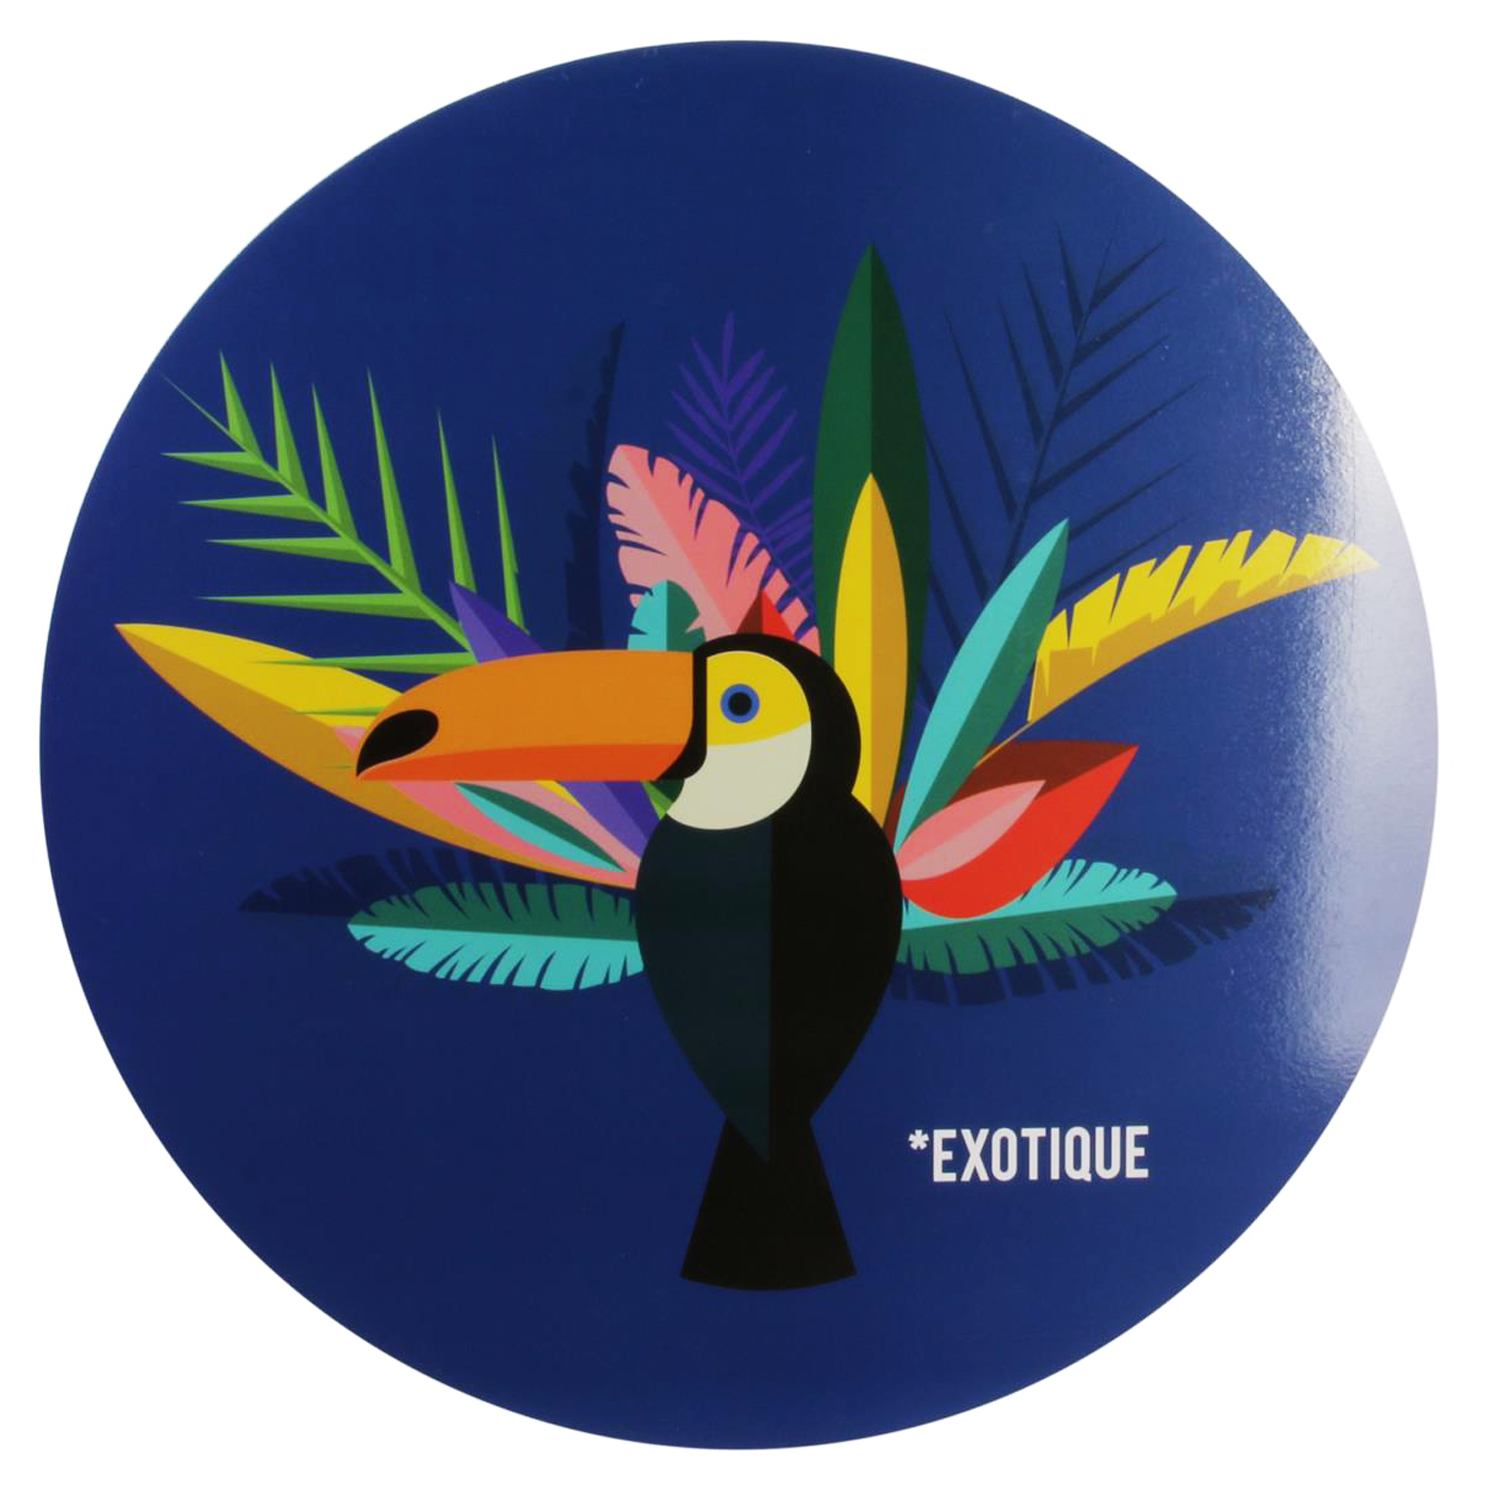 Set de table rond \'Tropical\' bleu (Toucan Exotique) - 35 cm - [Q3295]